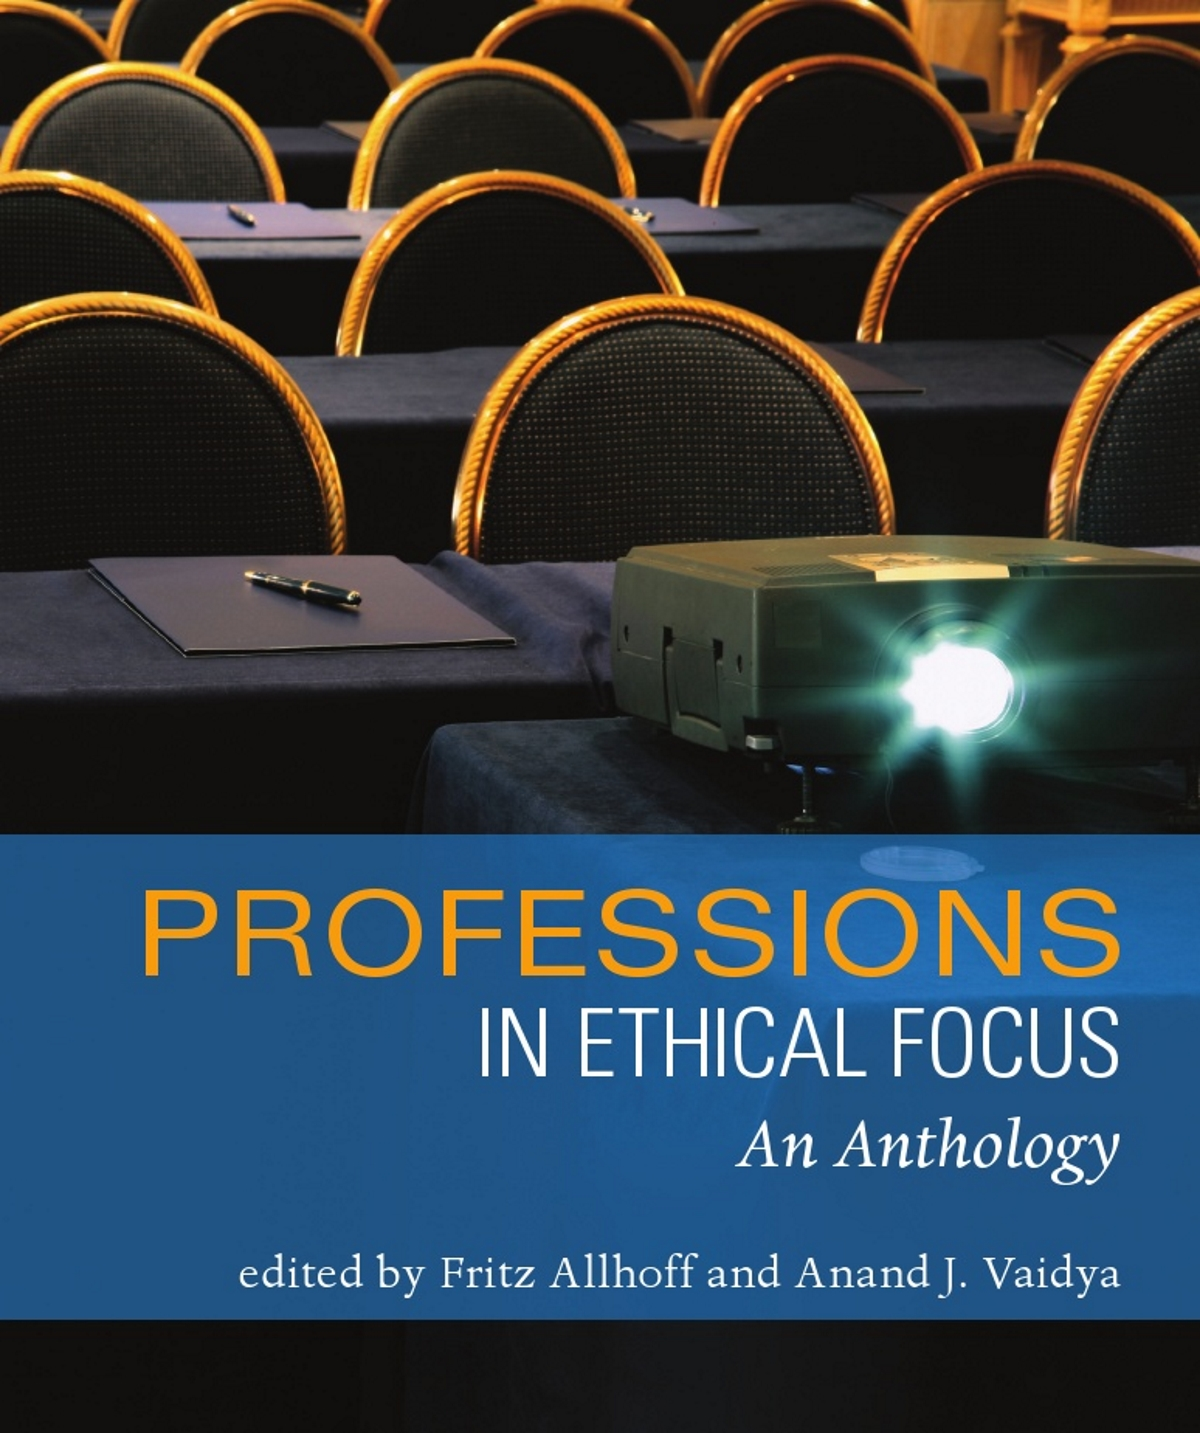 essays on ethics in business and the professions pdfeports essays on ethics in business and the professions